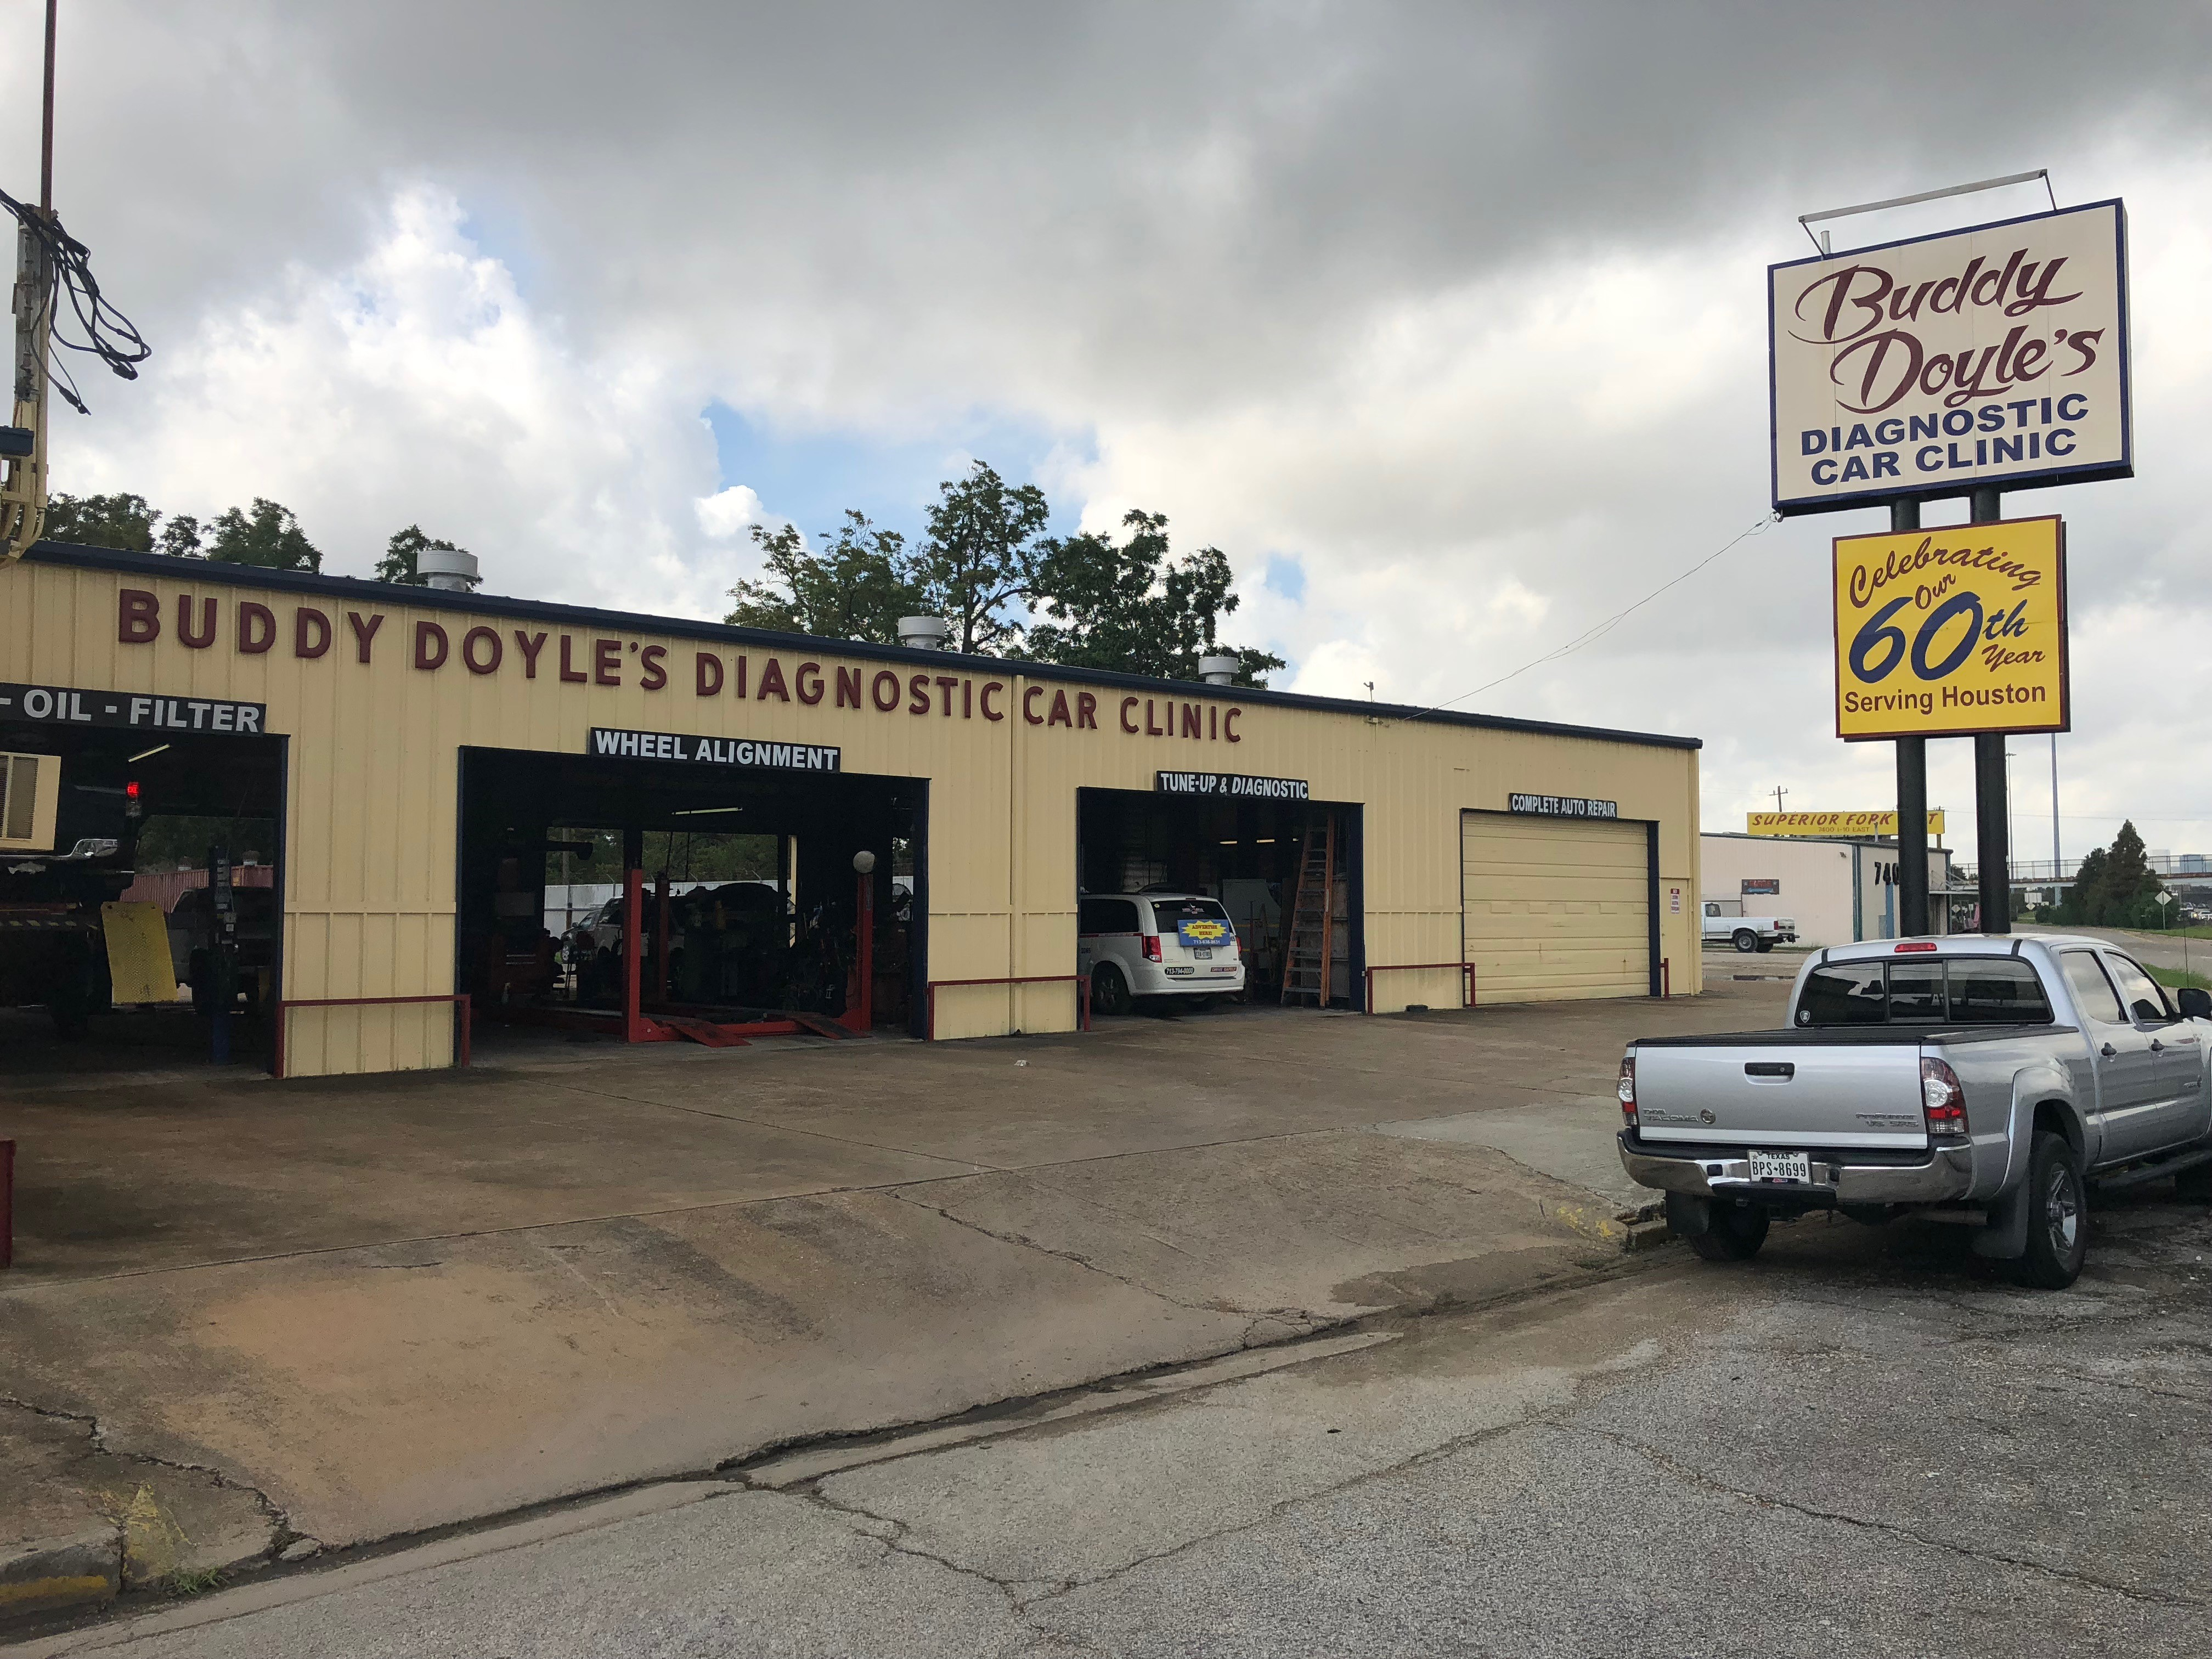 BUDDY DOYLE'S CAR CLINIC